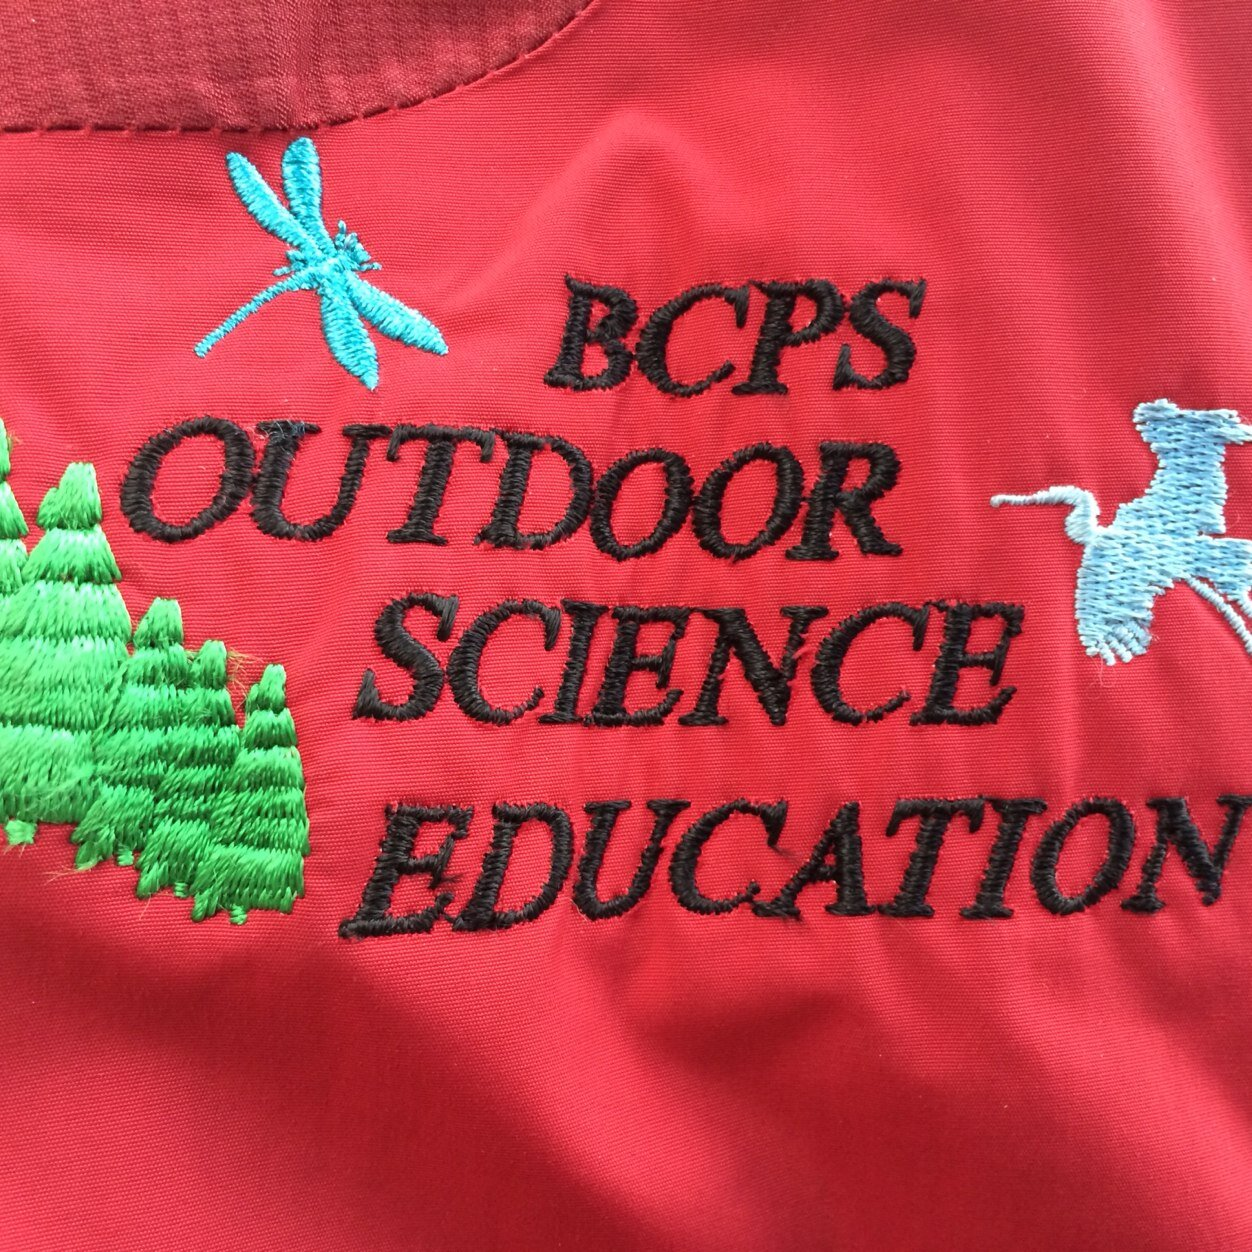 BCPS Outdoor Science (@BCPSOutdoorSci )